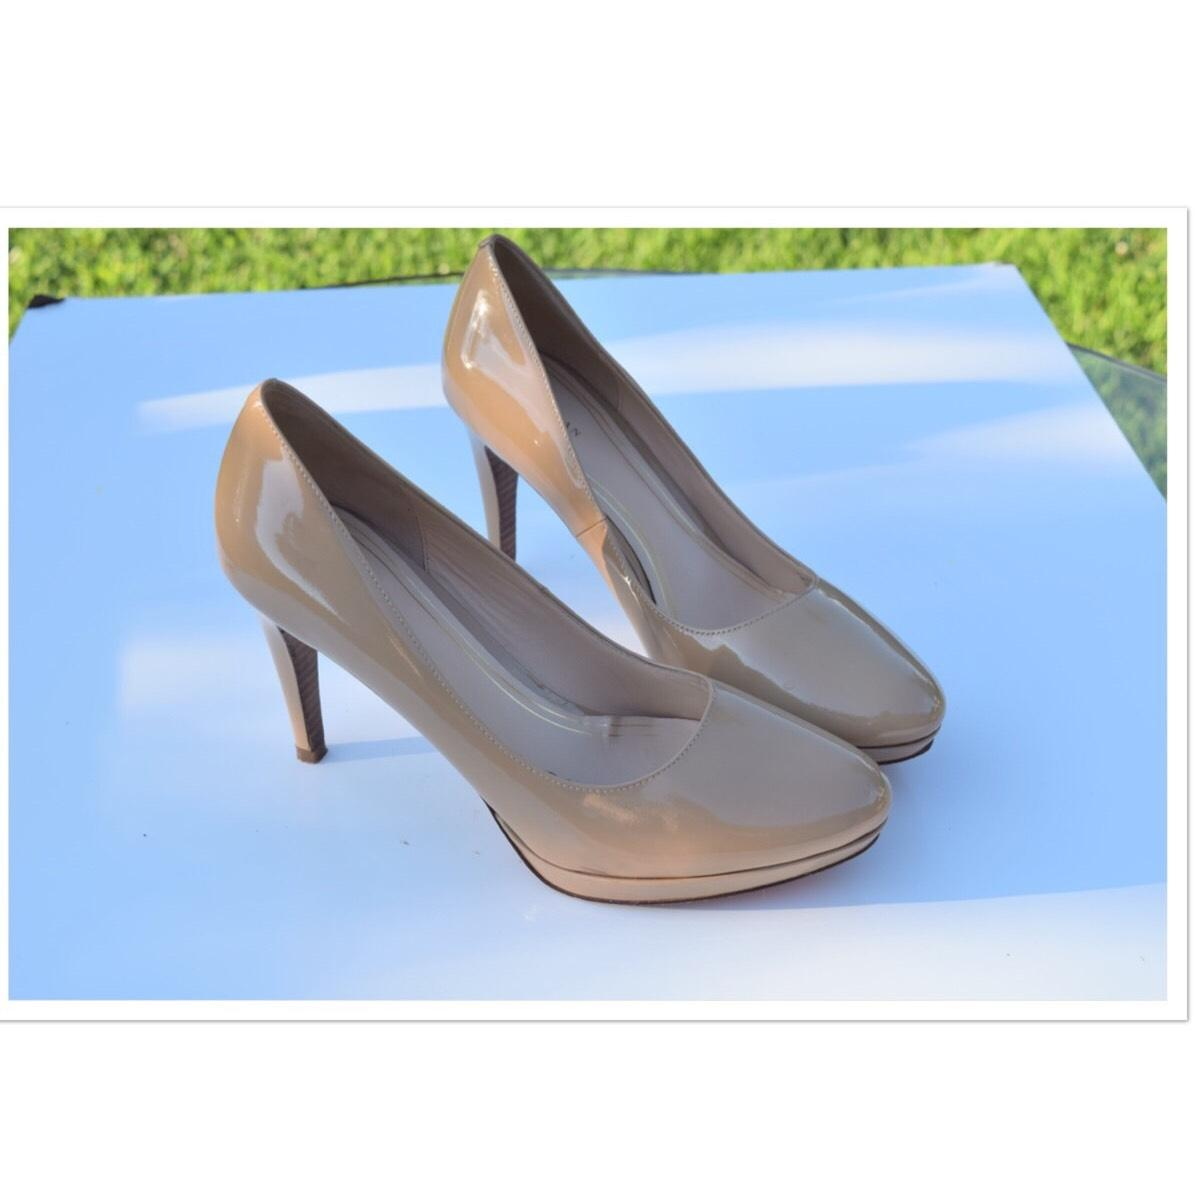 Cole Haan Natural Patent Leather Pumps Size US 10.5 Regular (M, B)